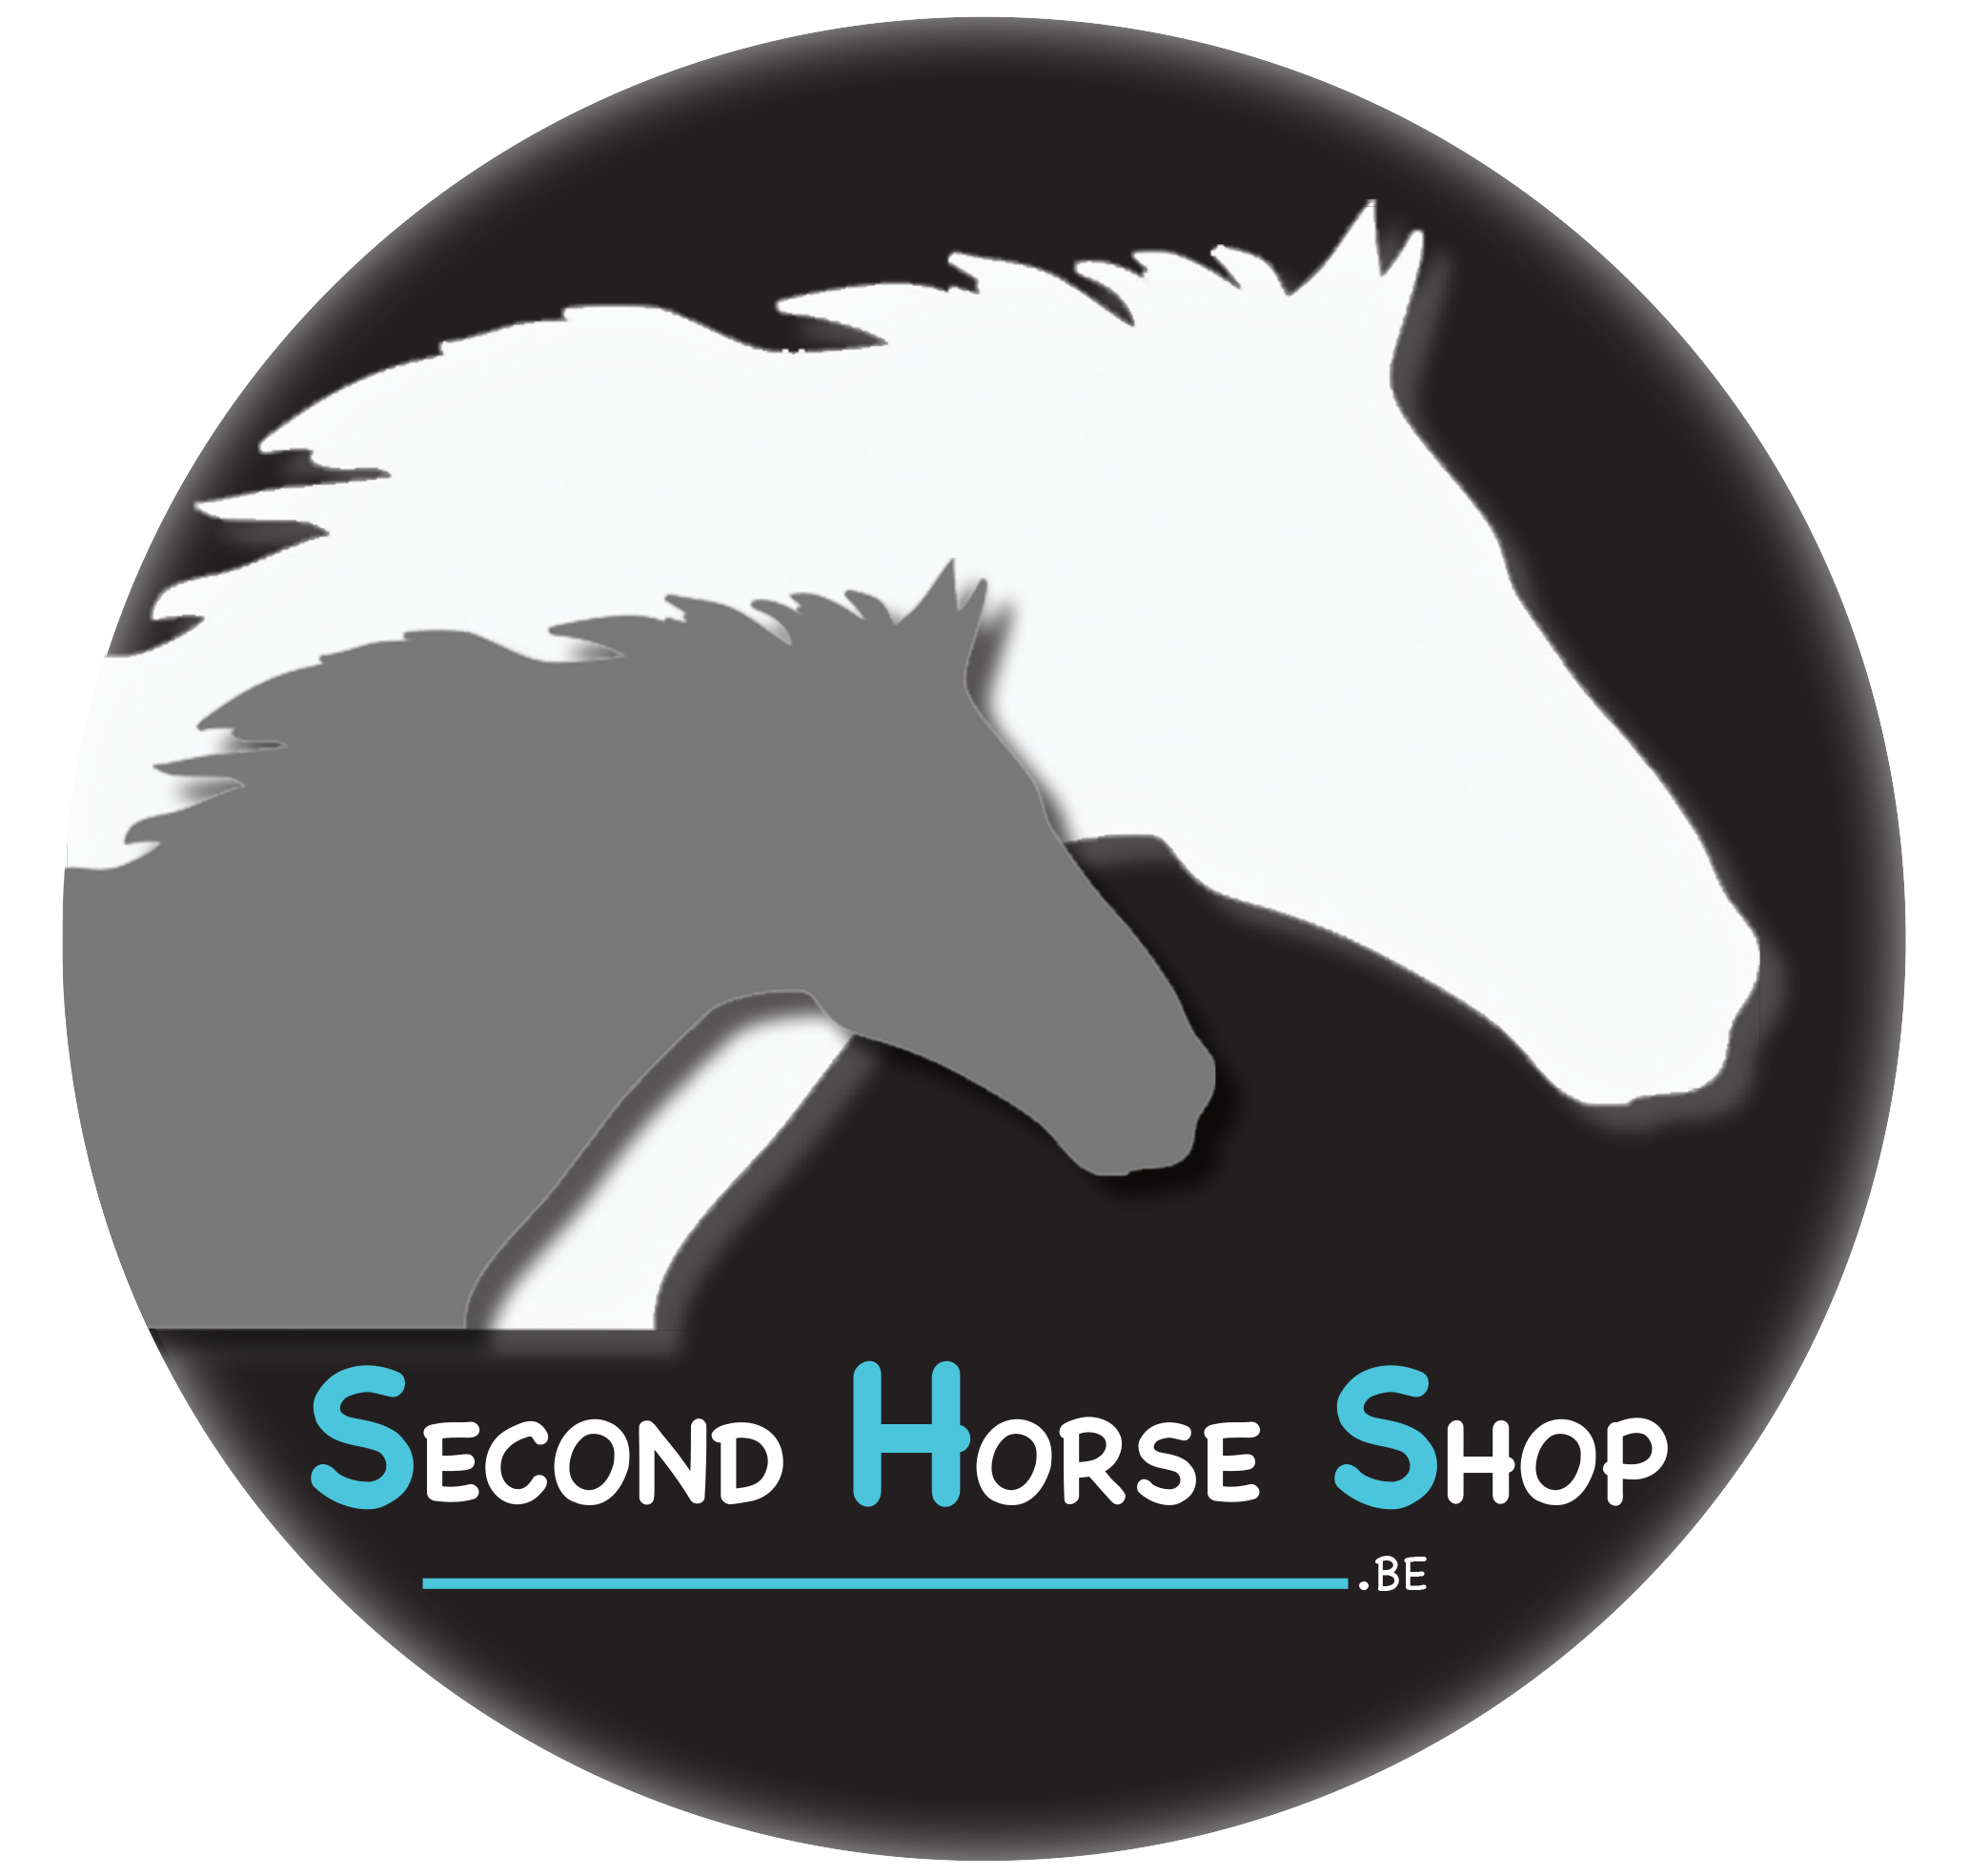 Second Horse Shop